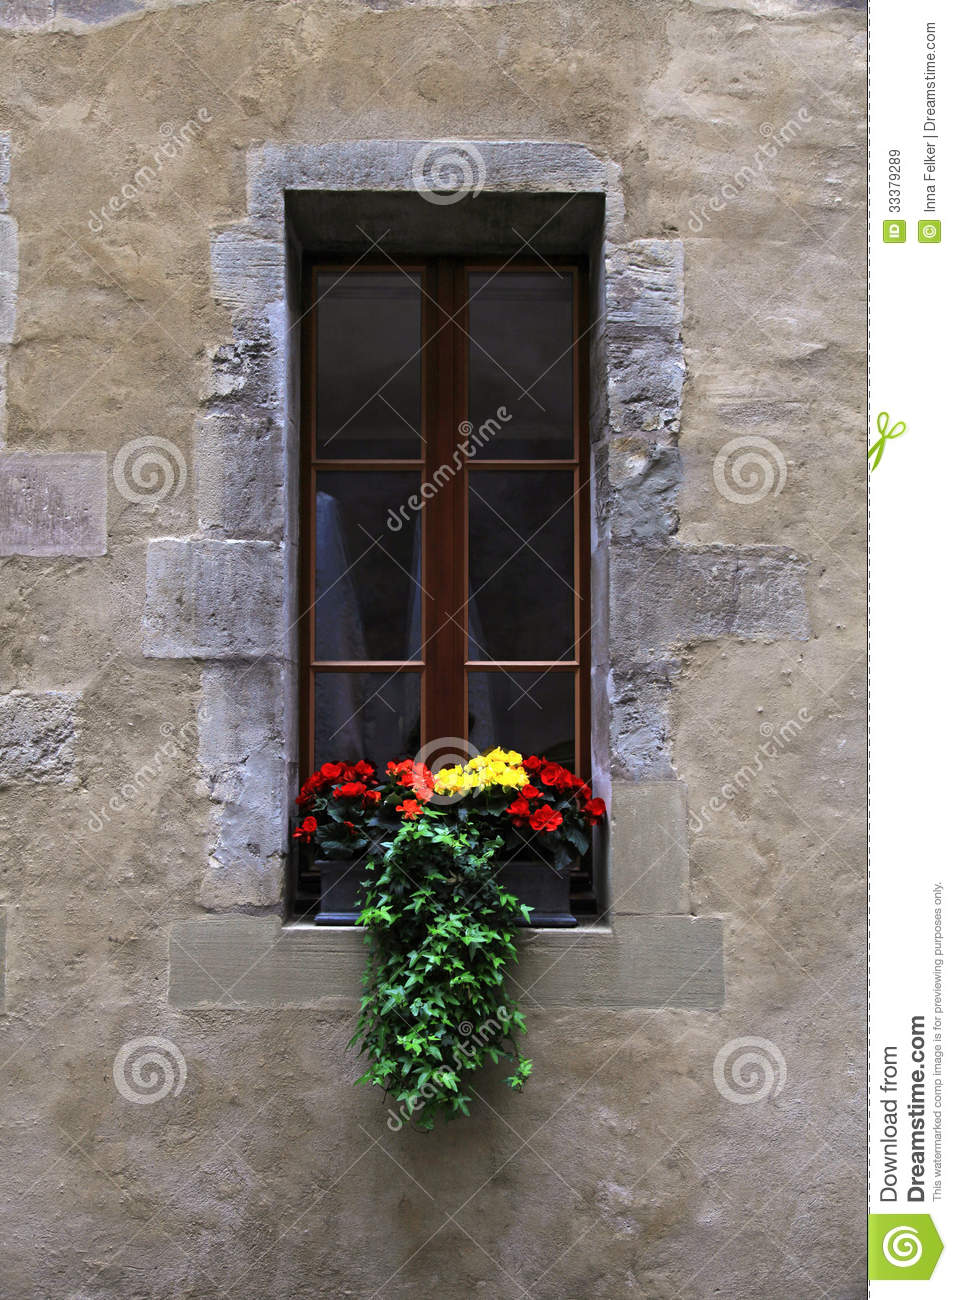 Vintage Window With Flowers And Window Box Royalty Free